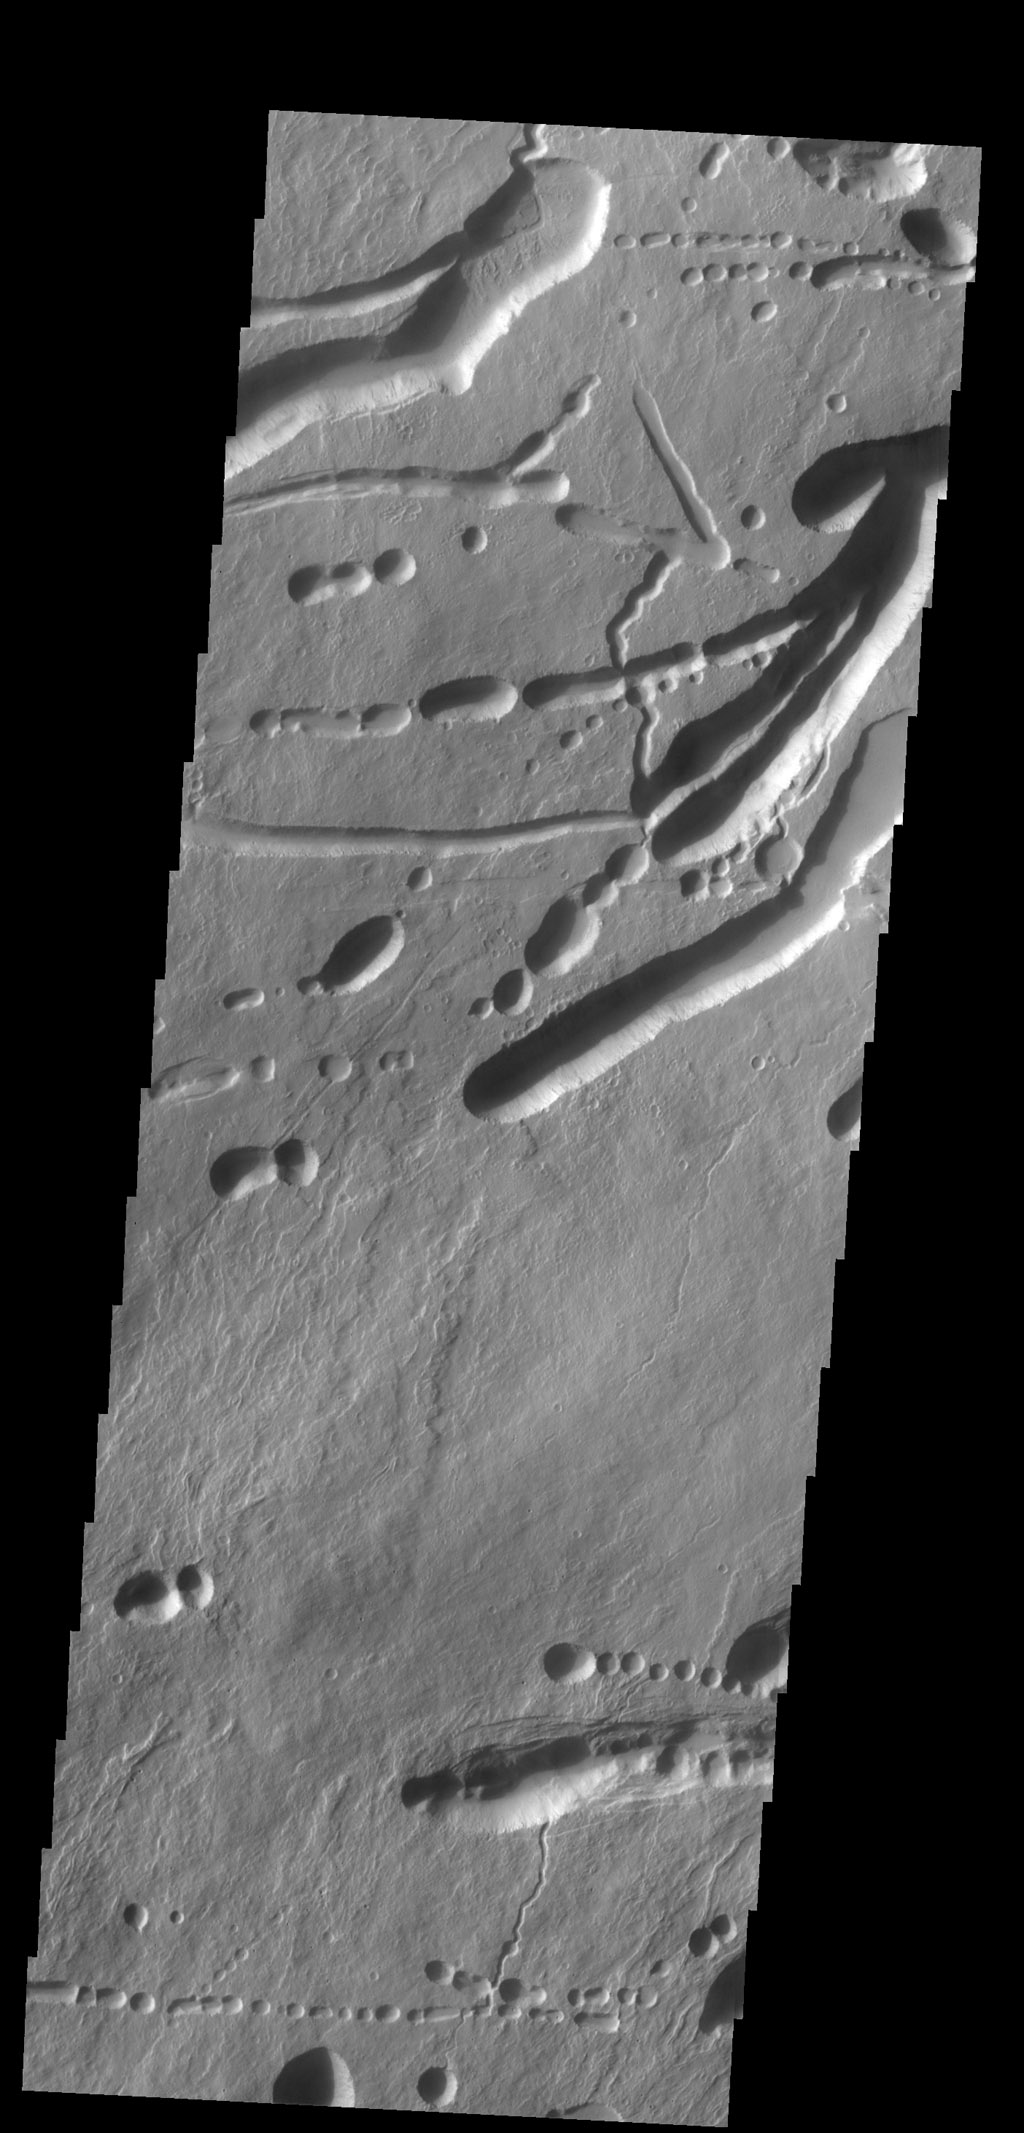 This image shows a different portion of the collapse features located on the northern flank of Ascraeus Mons as seen by NASA's 2001 Mars Odyssey spacecraft.